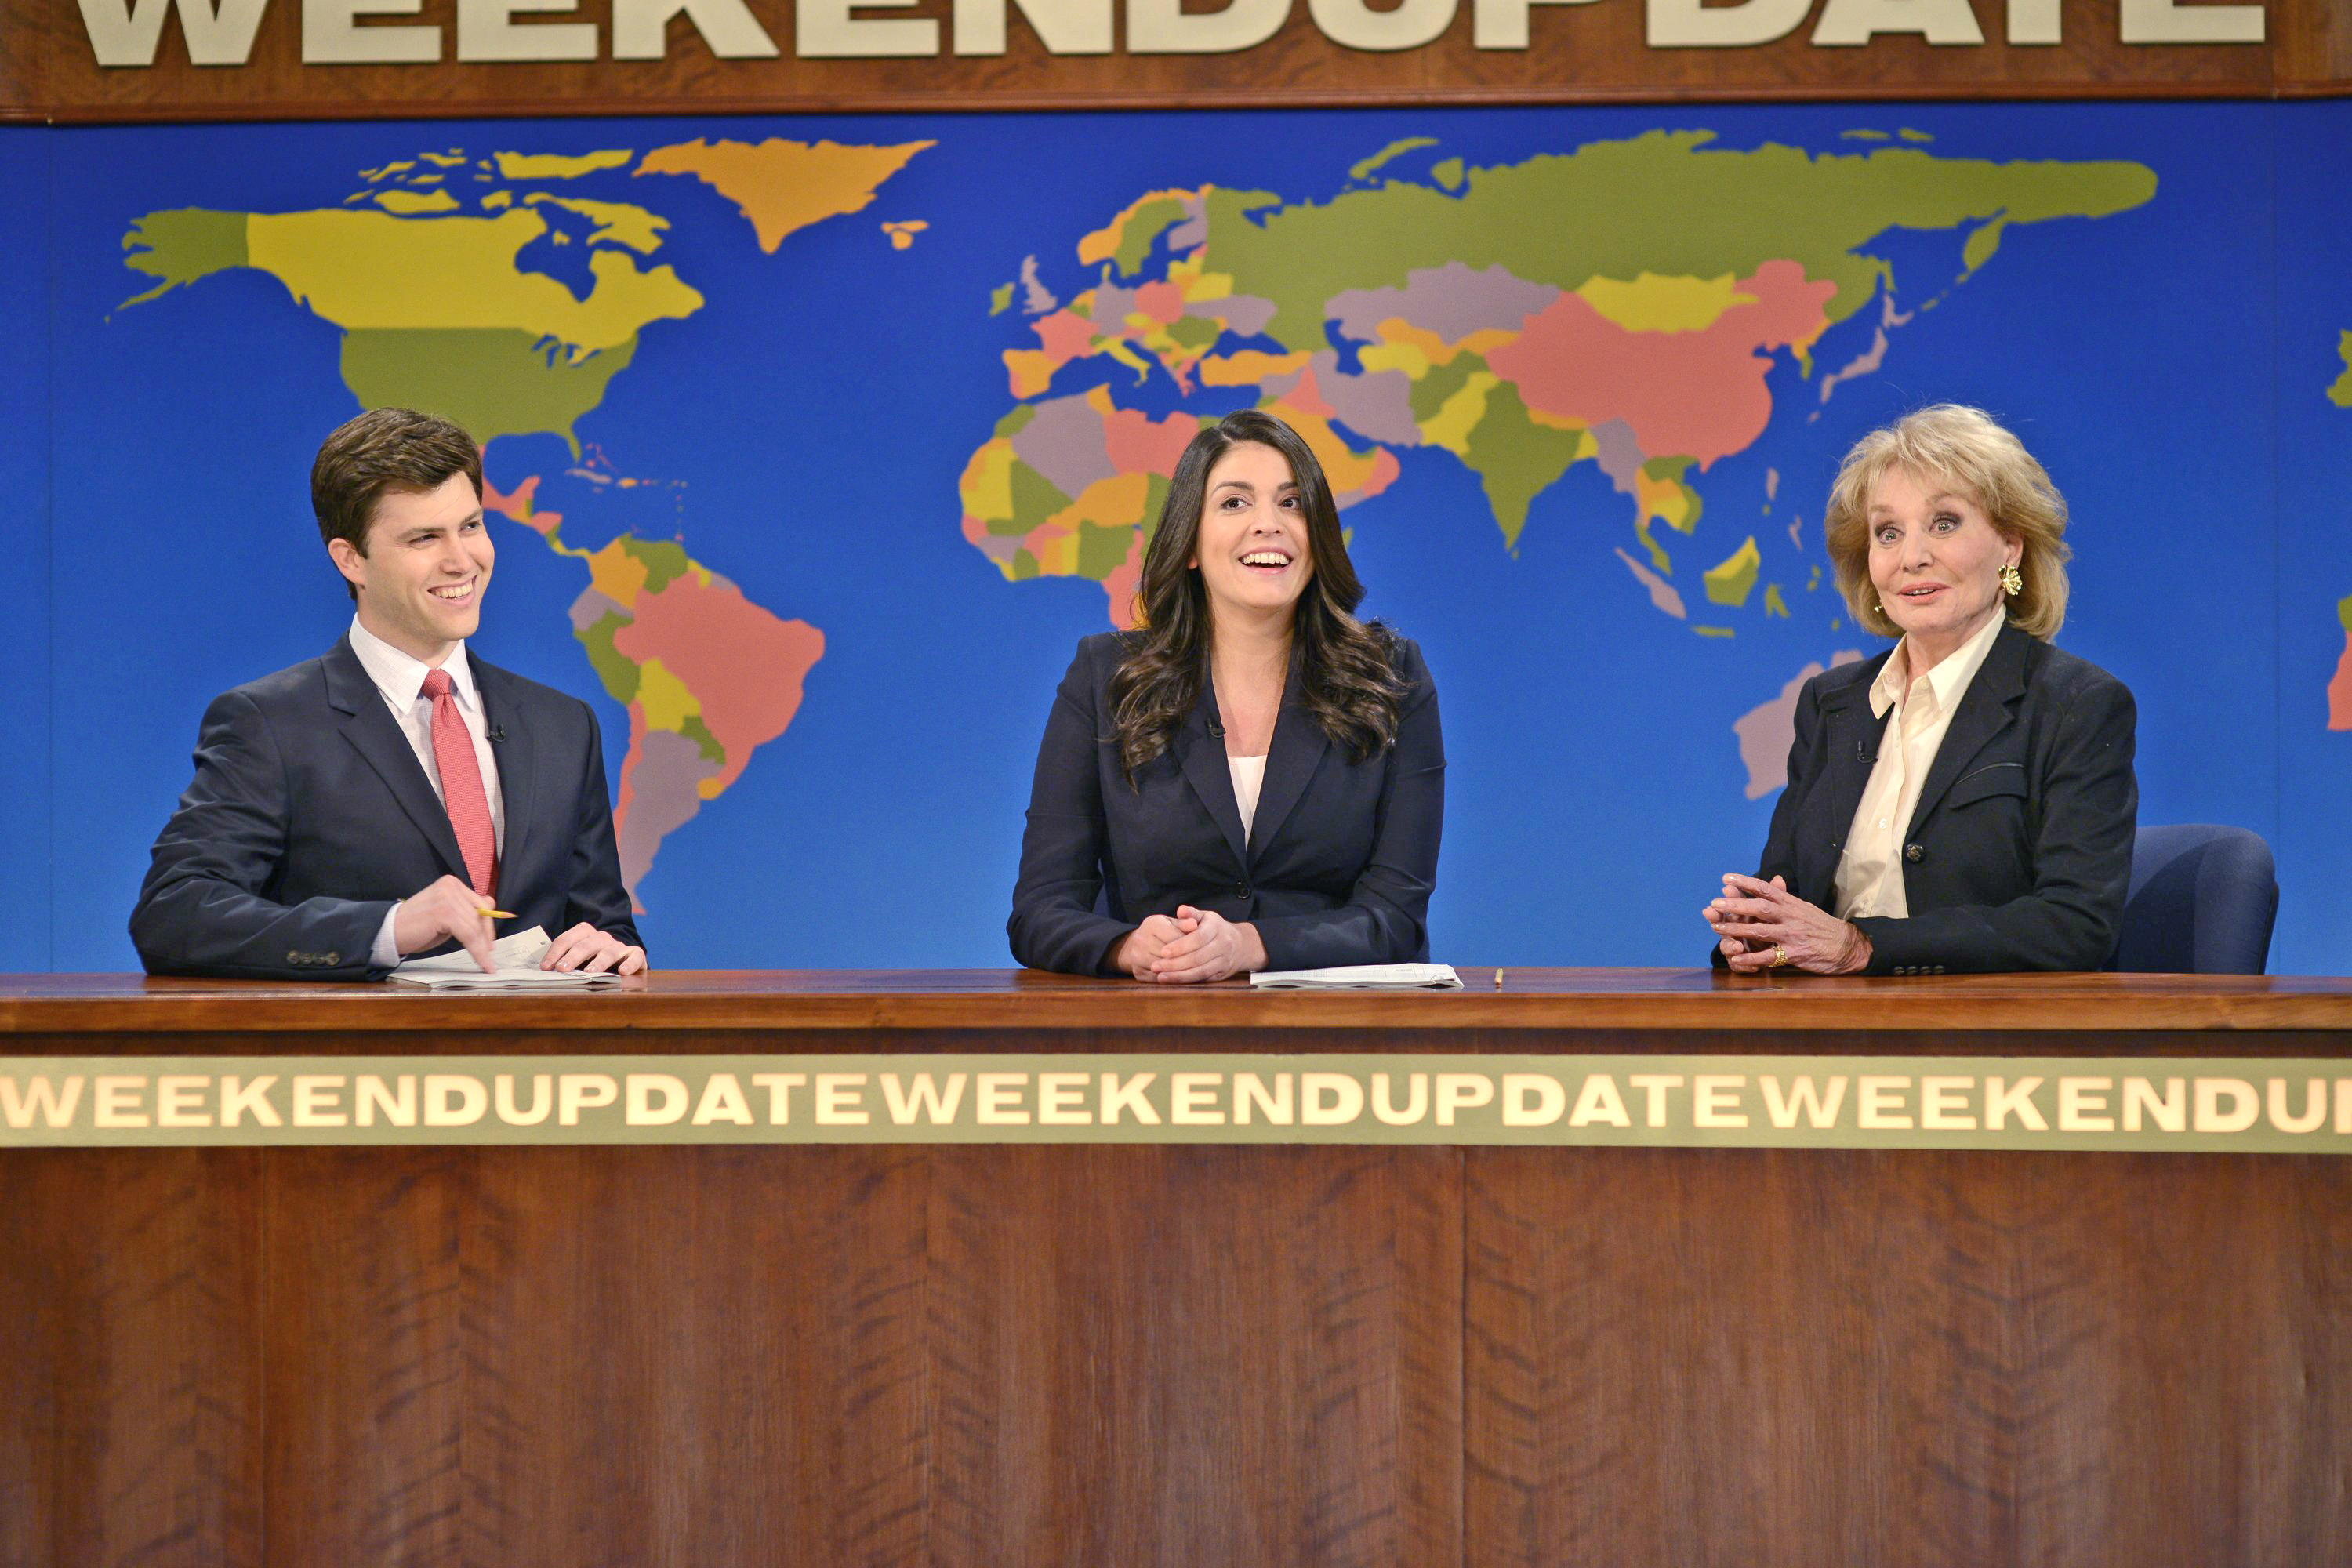 From left: Colin Jost, Cecily Strong and Barbara Walters during Weekend Update on Saturday Night Live on May 10, 2014.